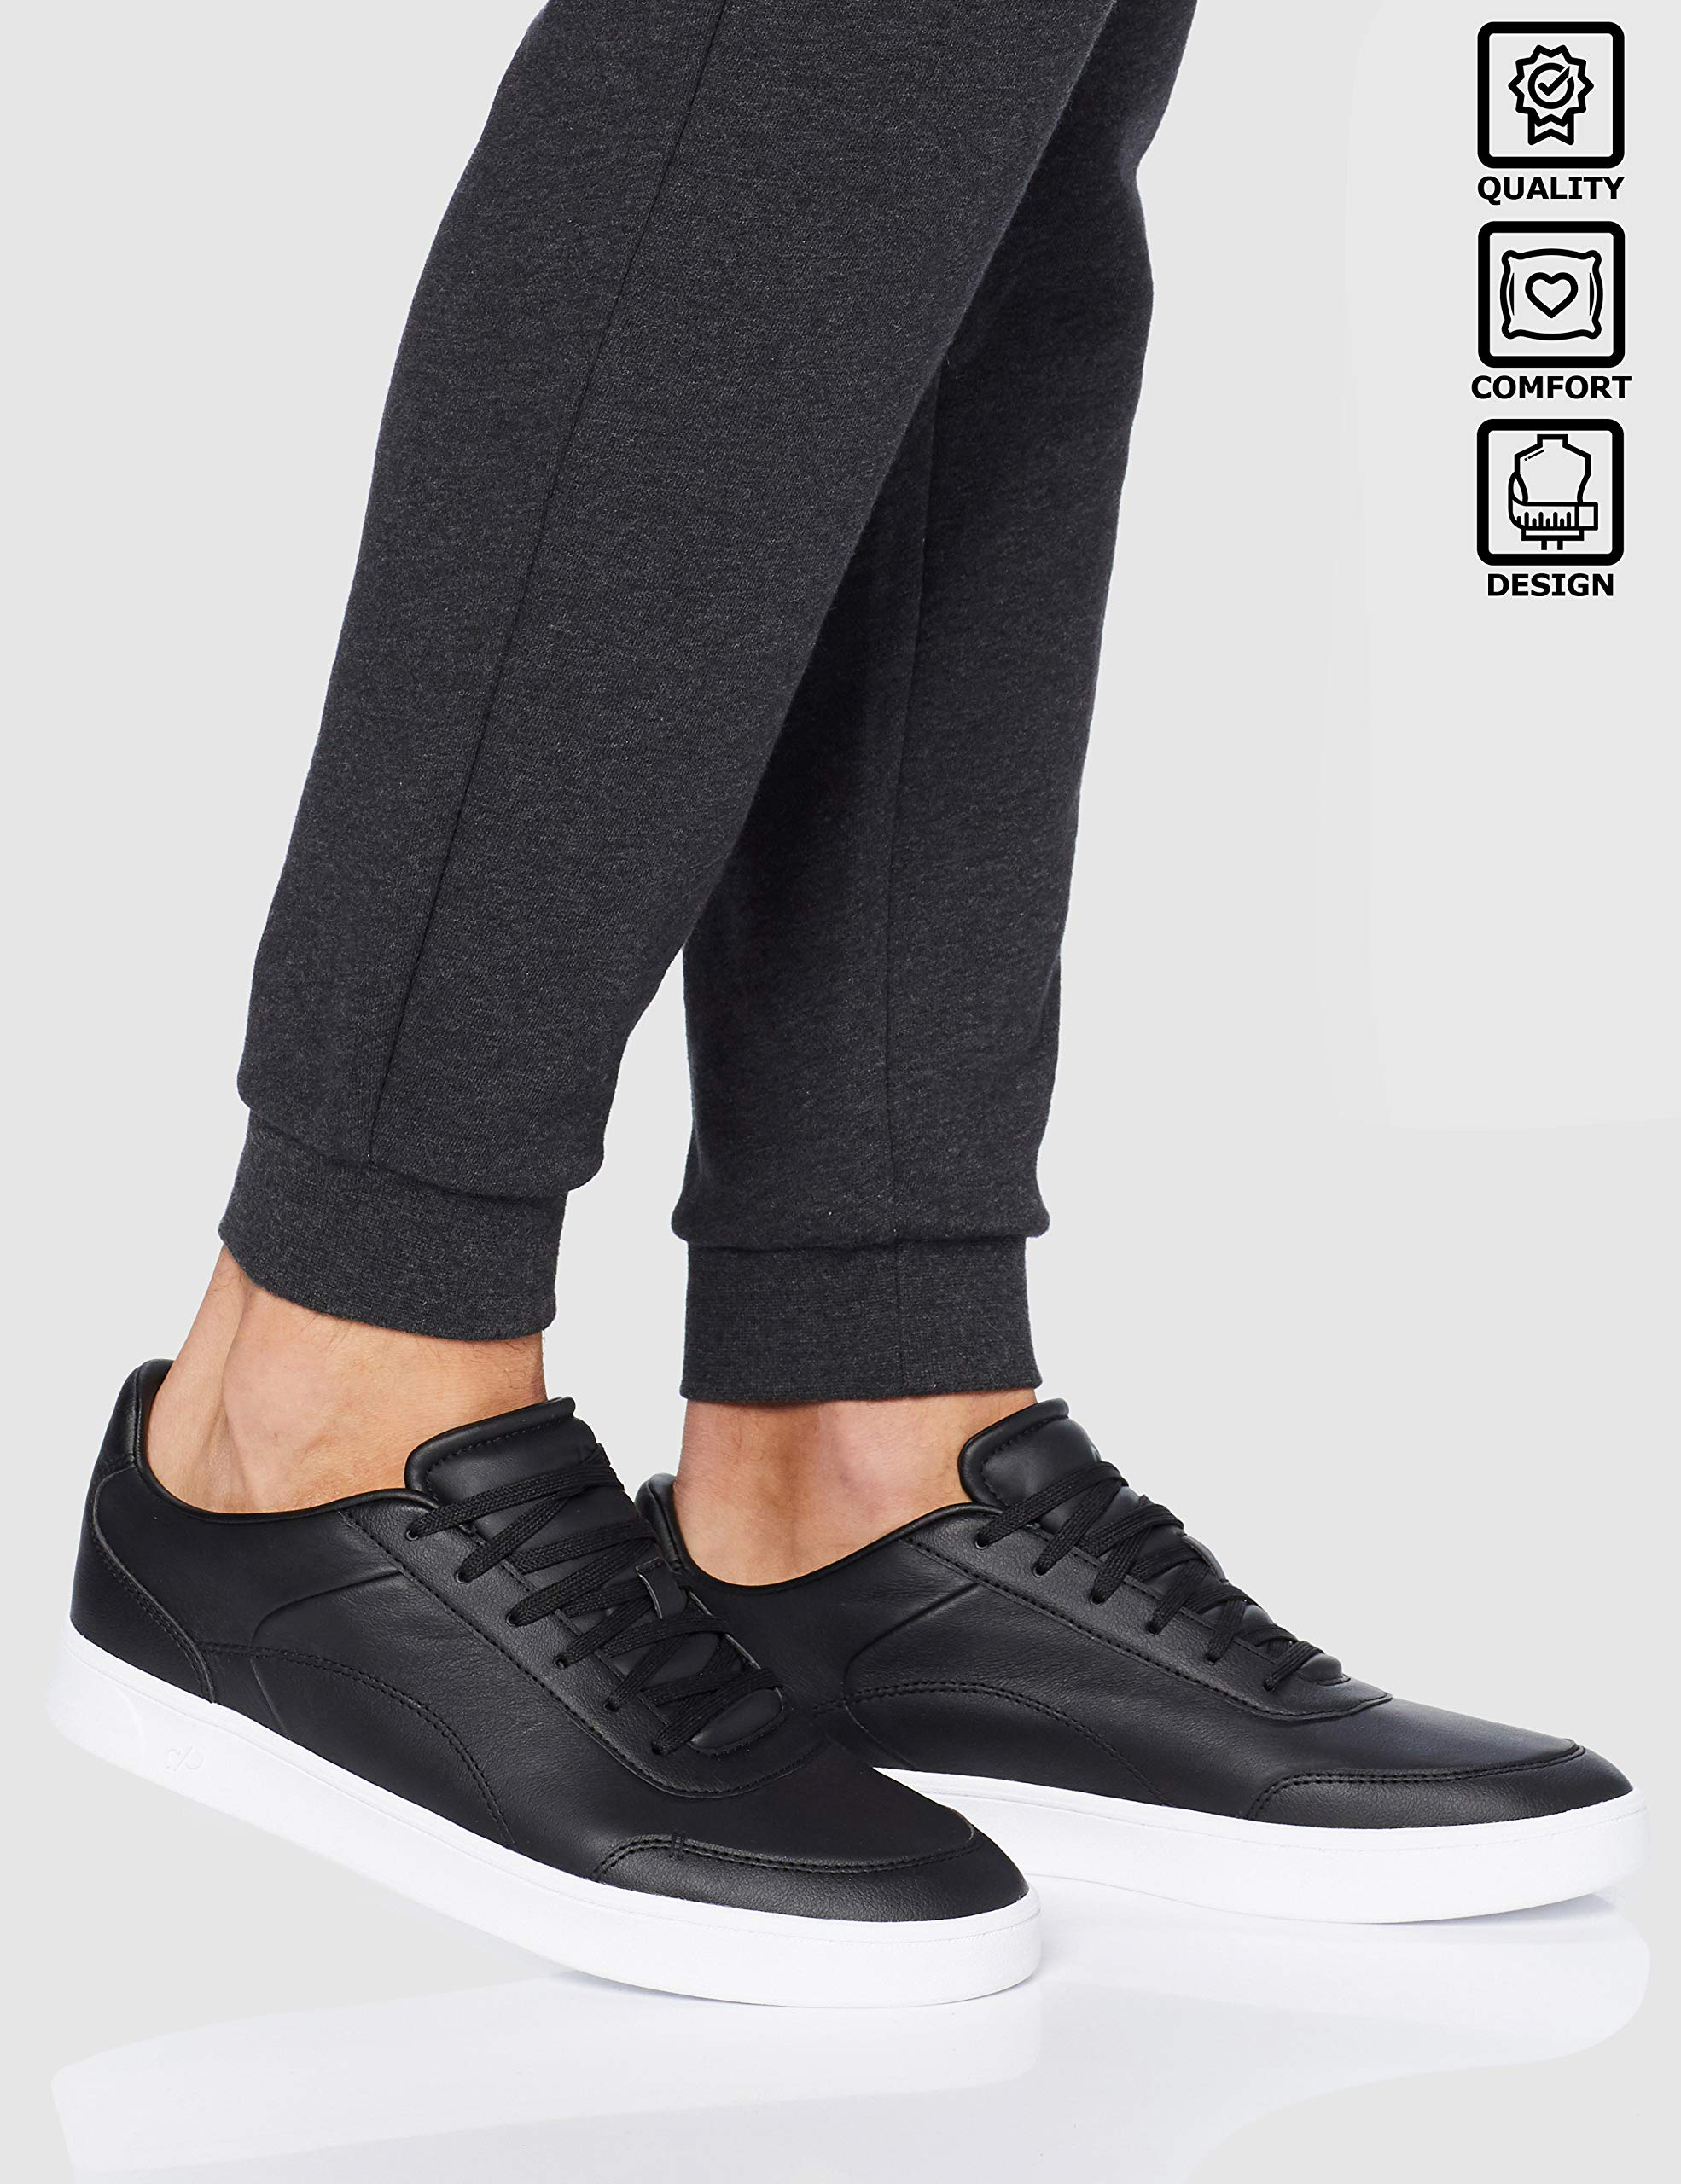 Details about CARE OF by PUMA Men's Leather Low Top Trainers, Be Choose SZcolor